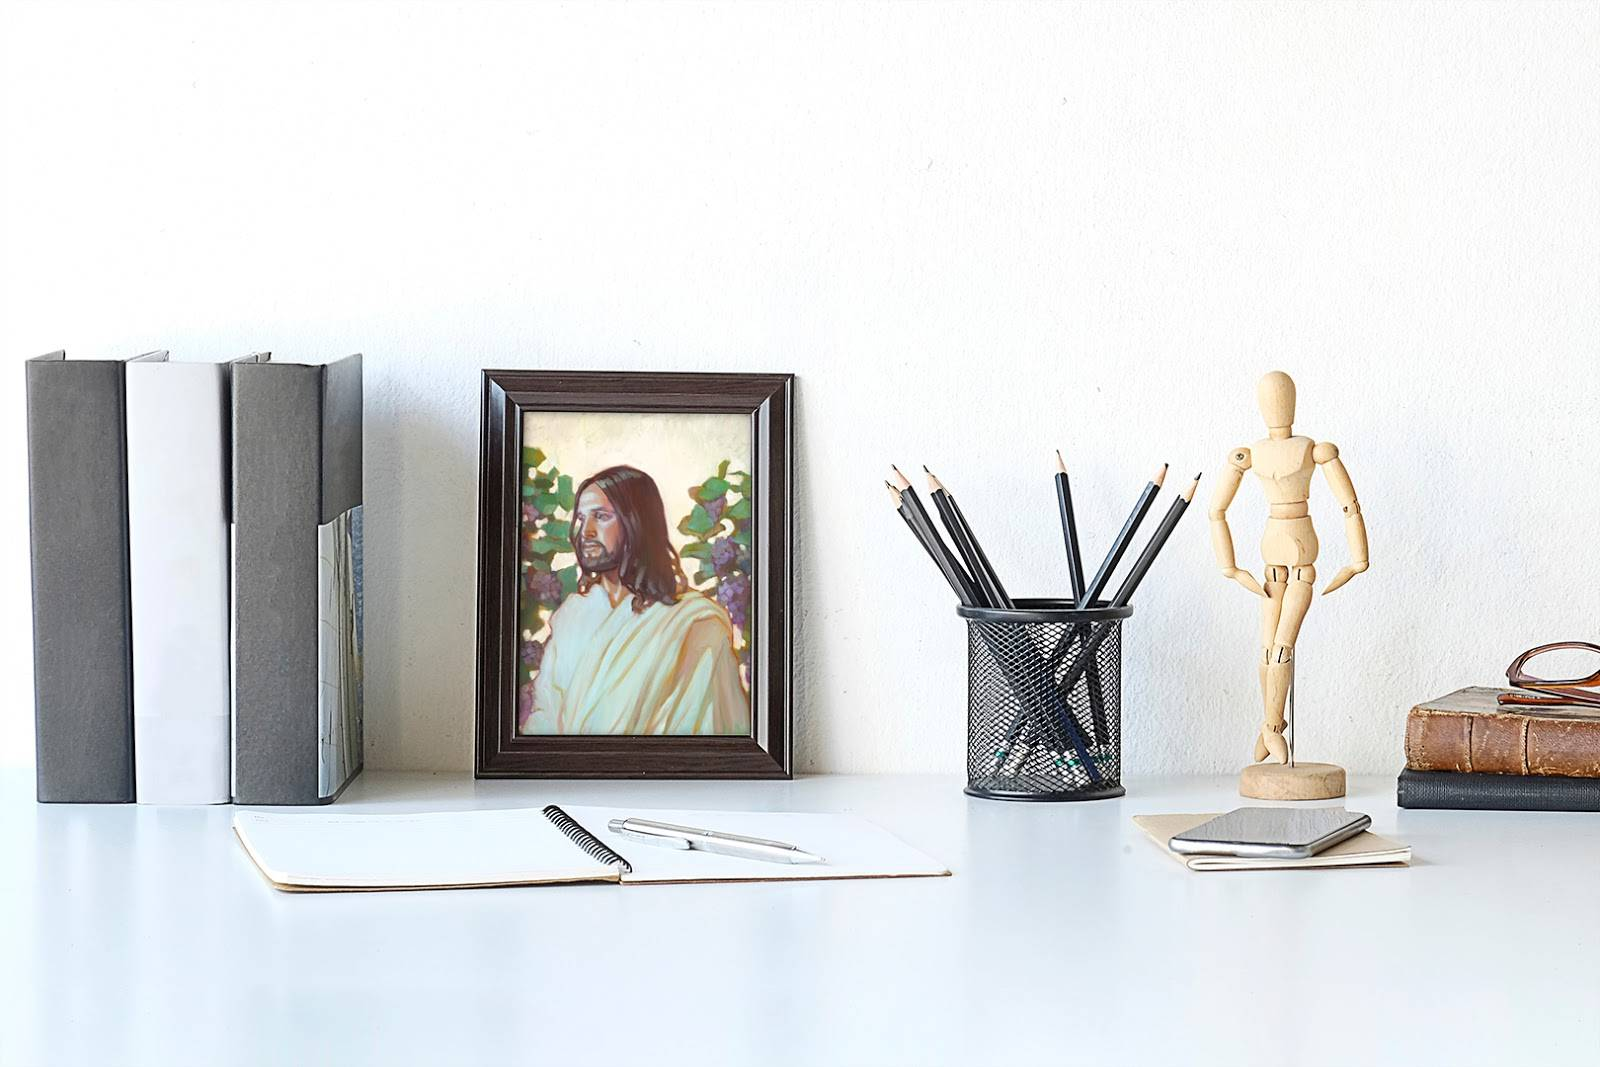 A small art portrait of Christ sitting on a desk, leaning up against the wall.